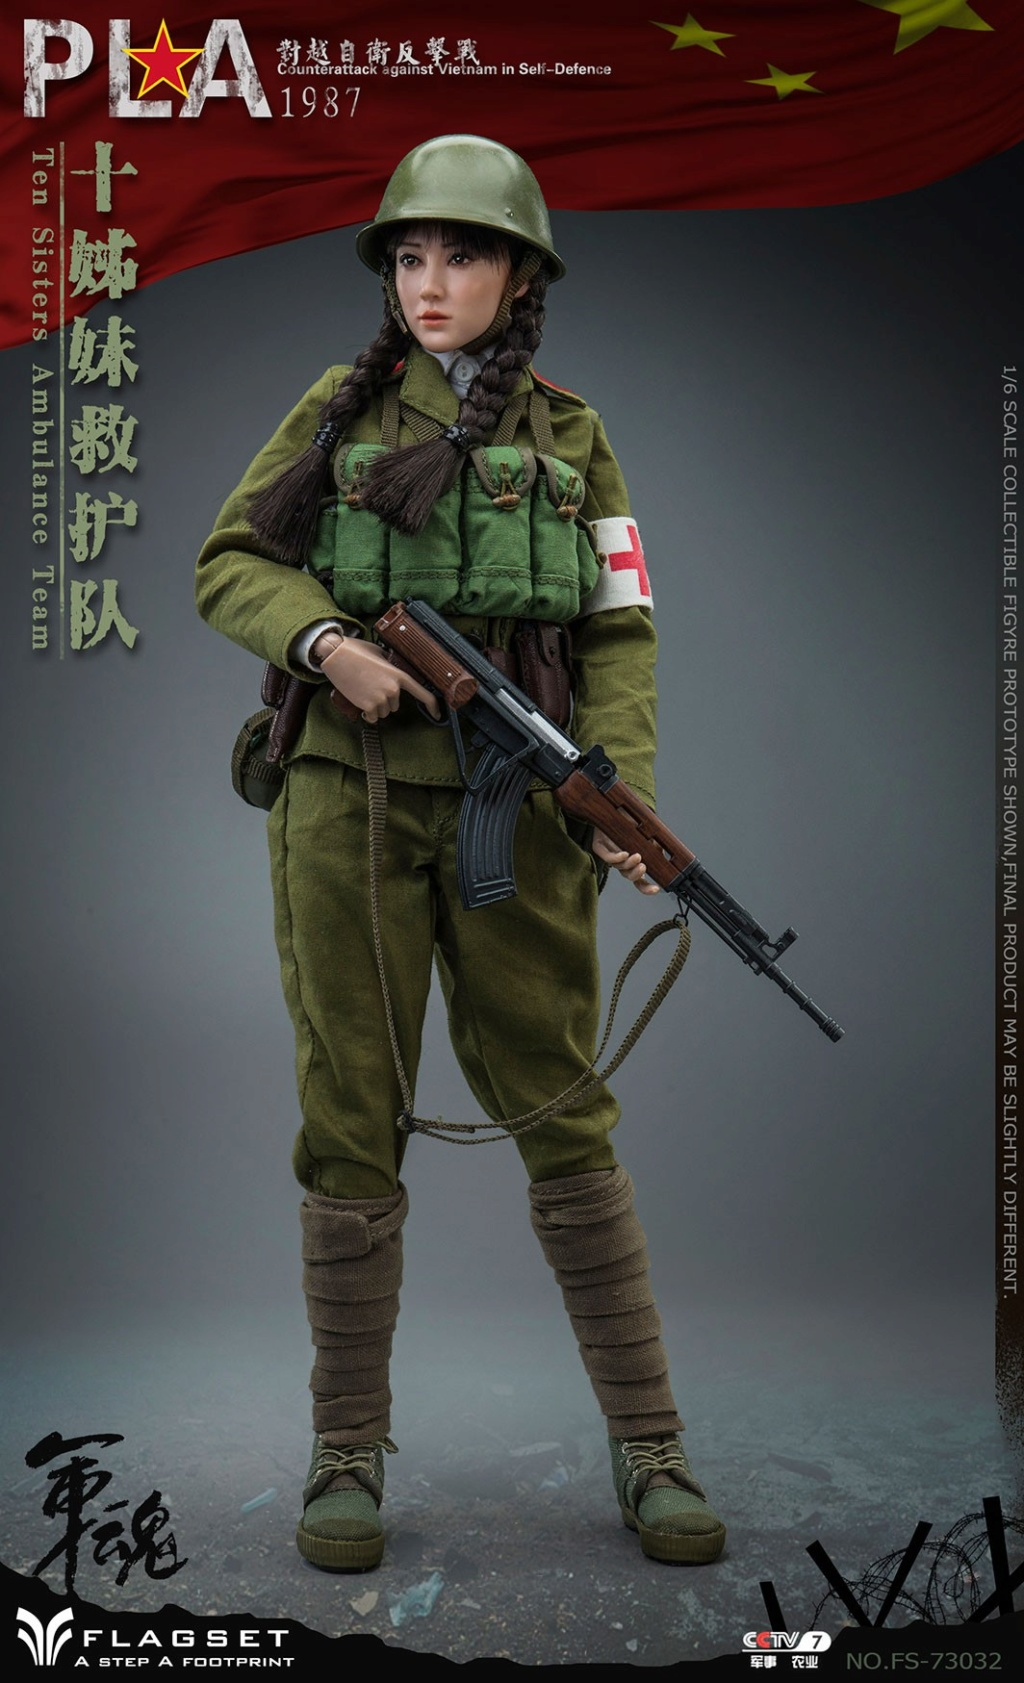 CounterAttack - NEW PRODUCT: Flagset: 1/6 counterattack against Vietnam-female soldiers of the ten sisters rescue team of the Chinese People's Liberation Army (FS73032#) 06535911